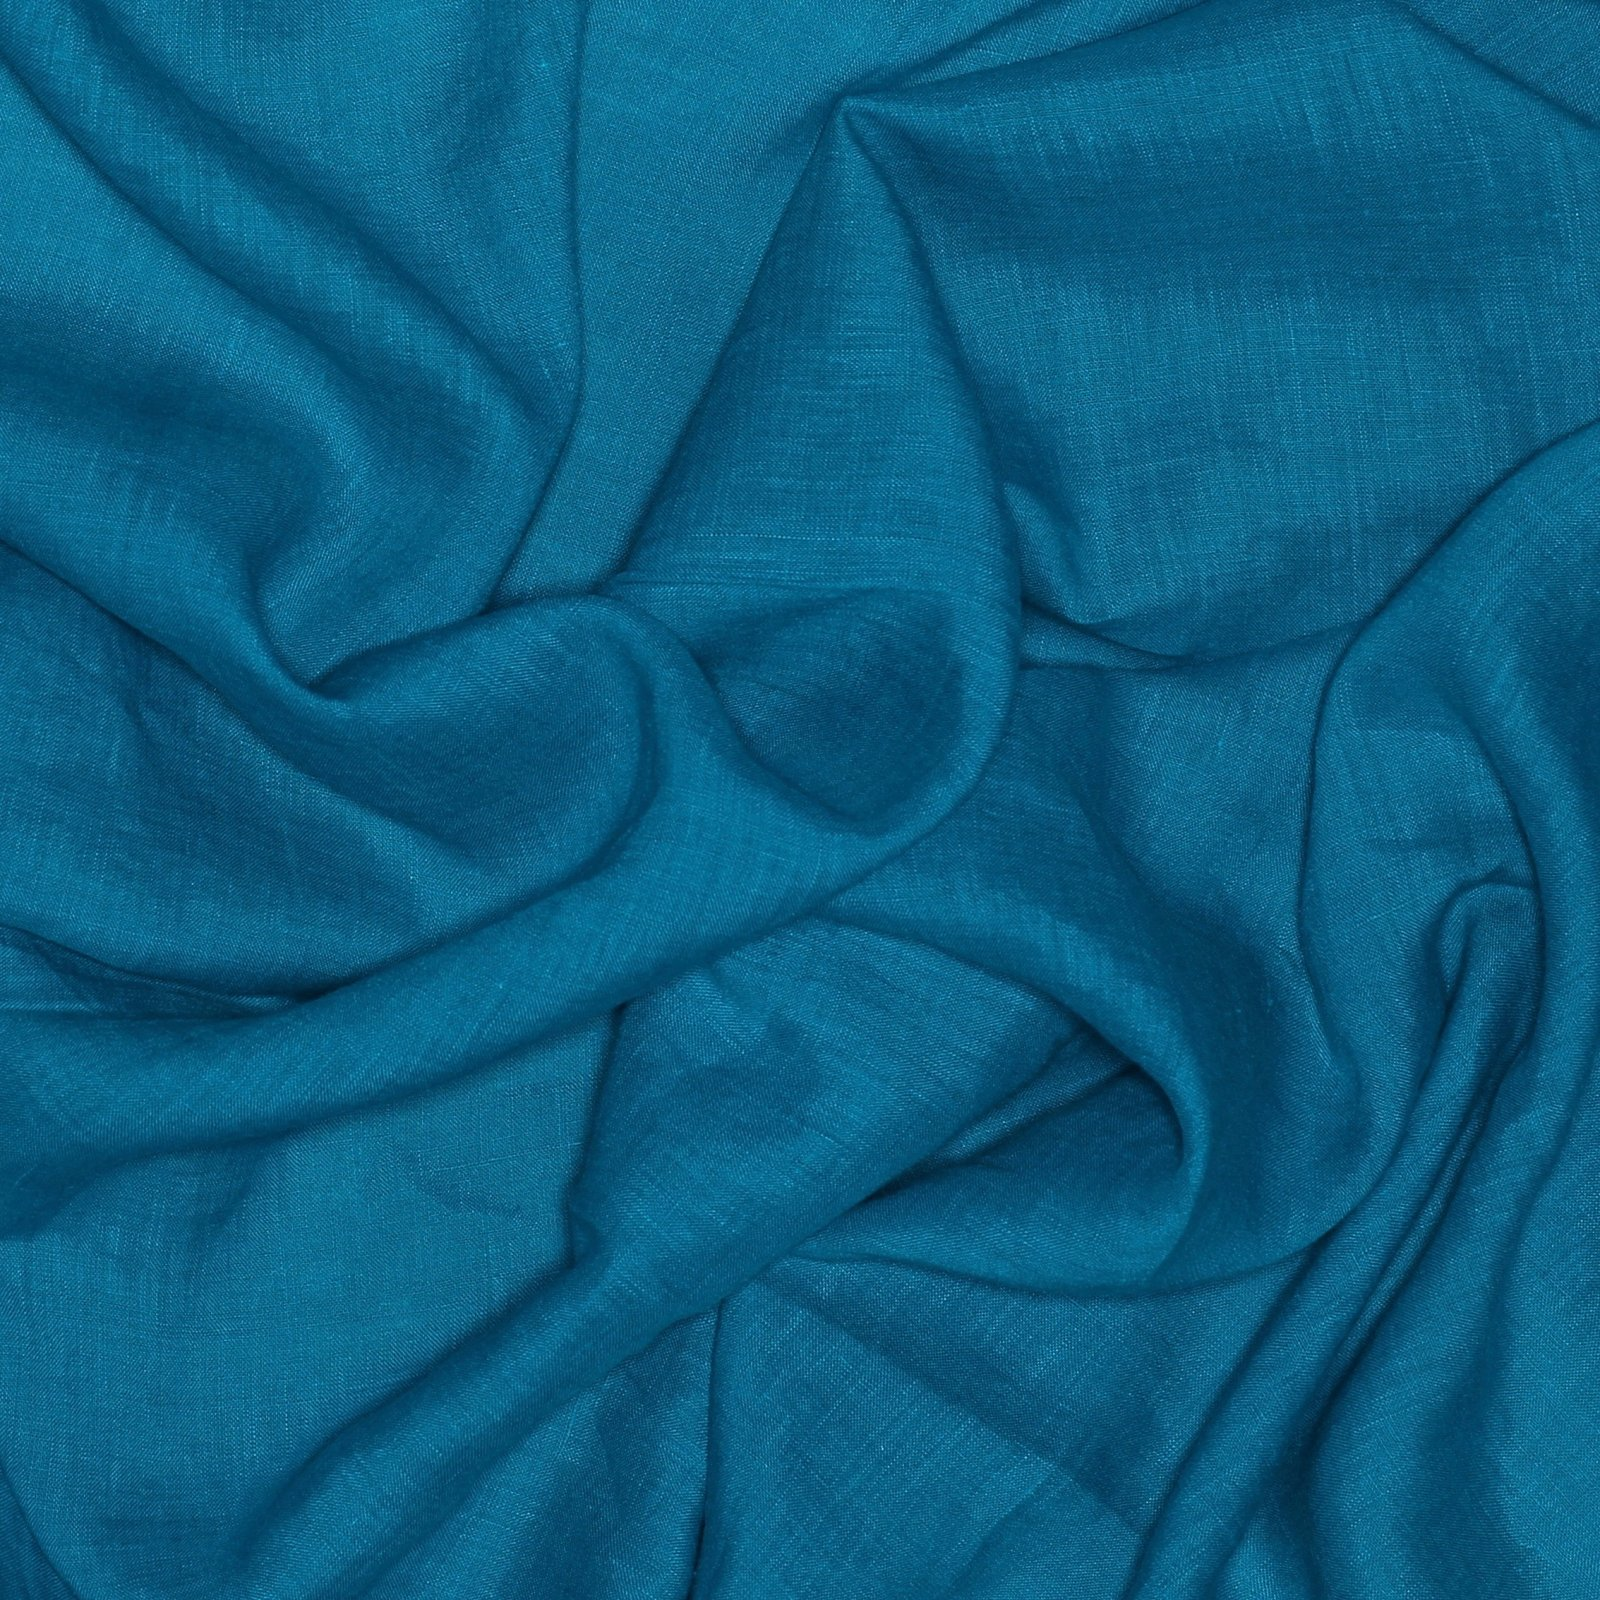 Cosmo - Bright Teal - Japanese Linen